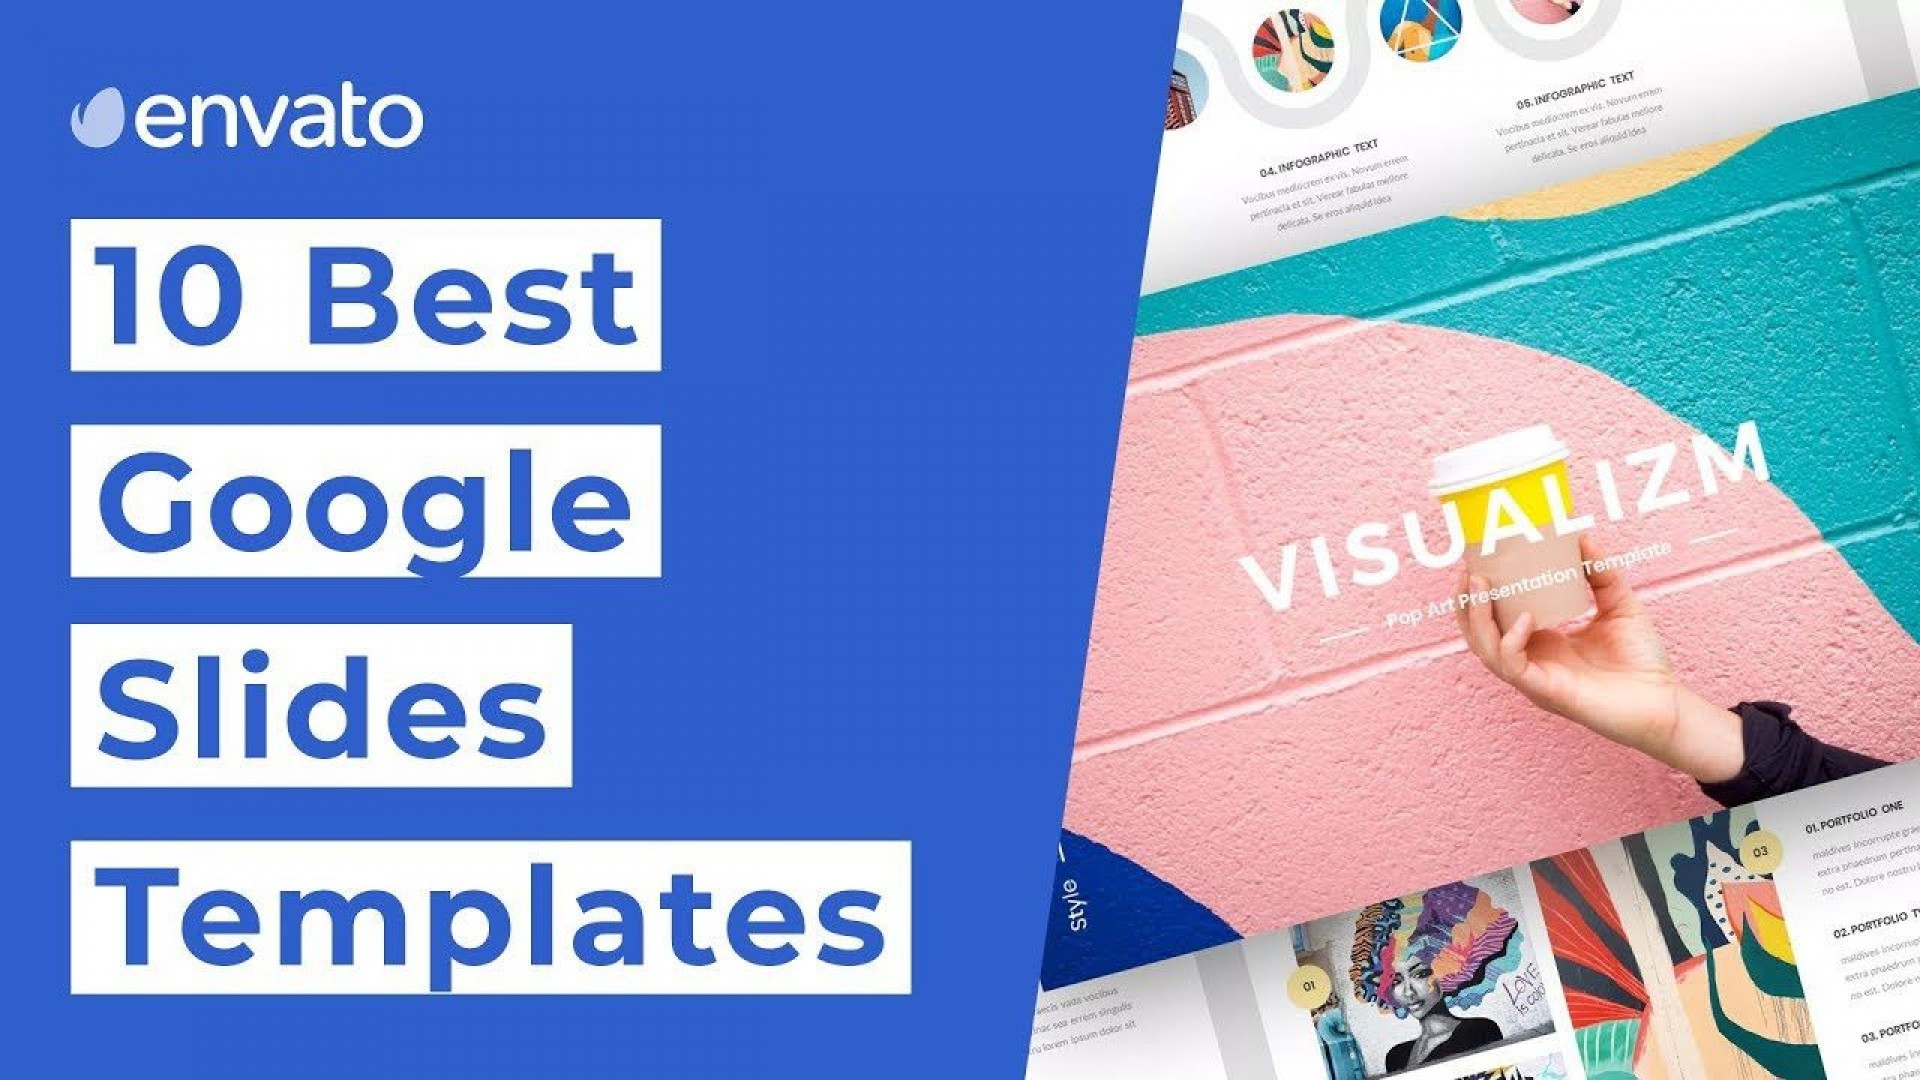 008 Dreaded Free Google Slide Template Sample  Templates For Graduation Math1920